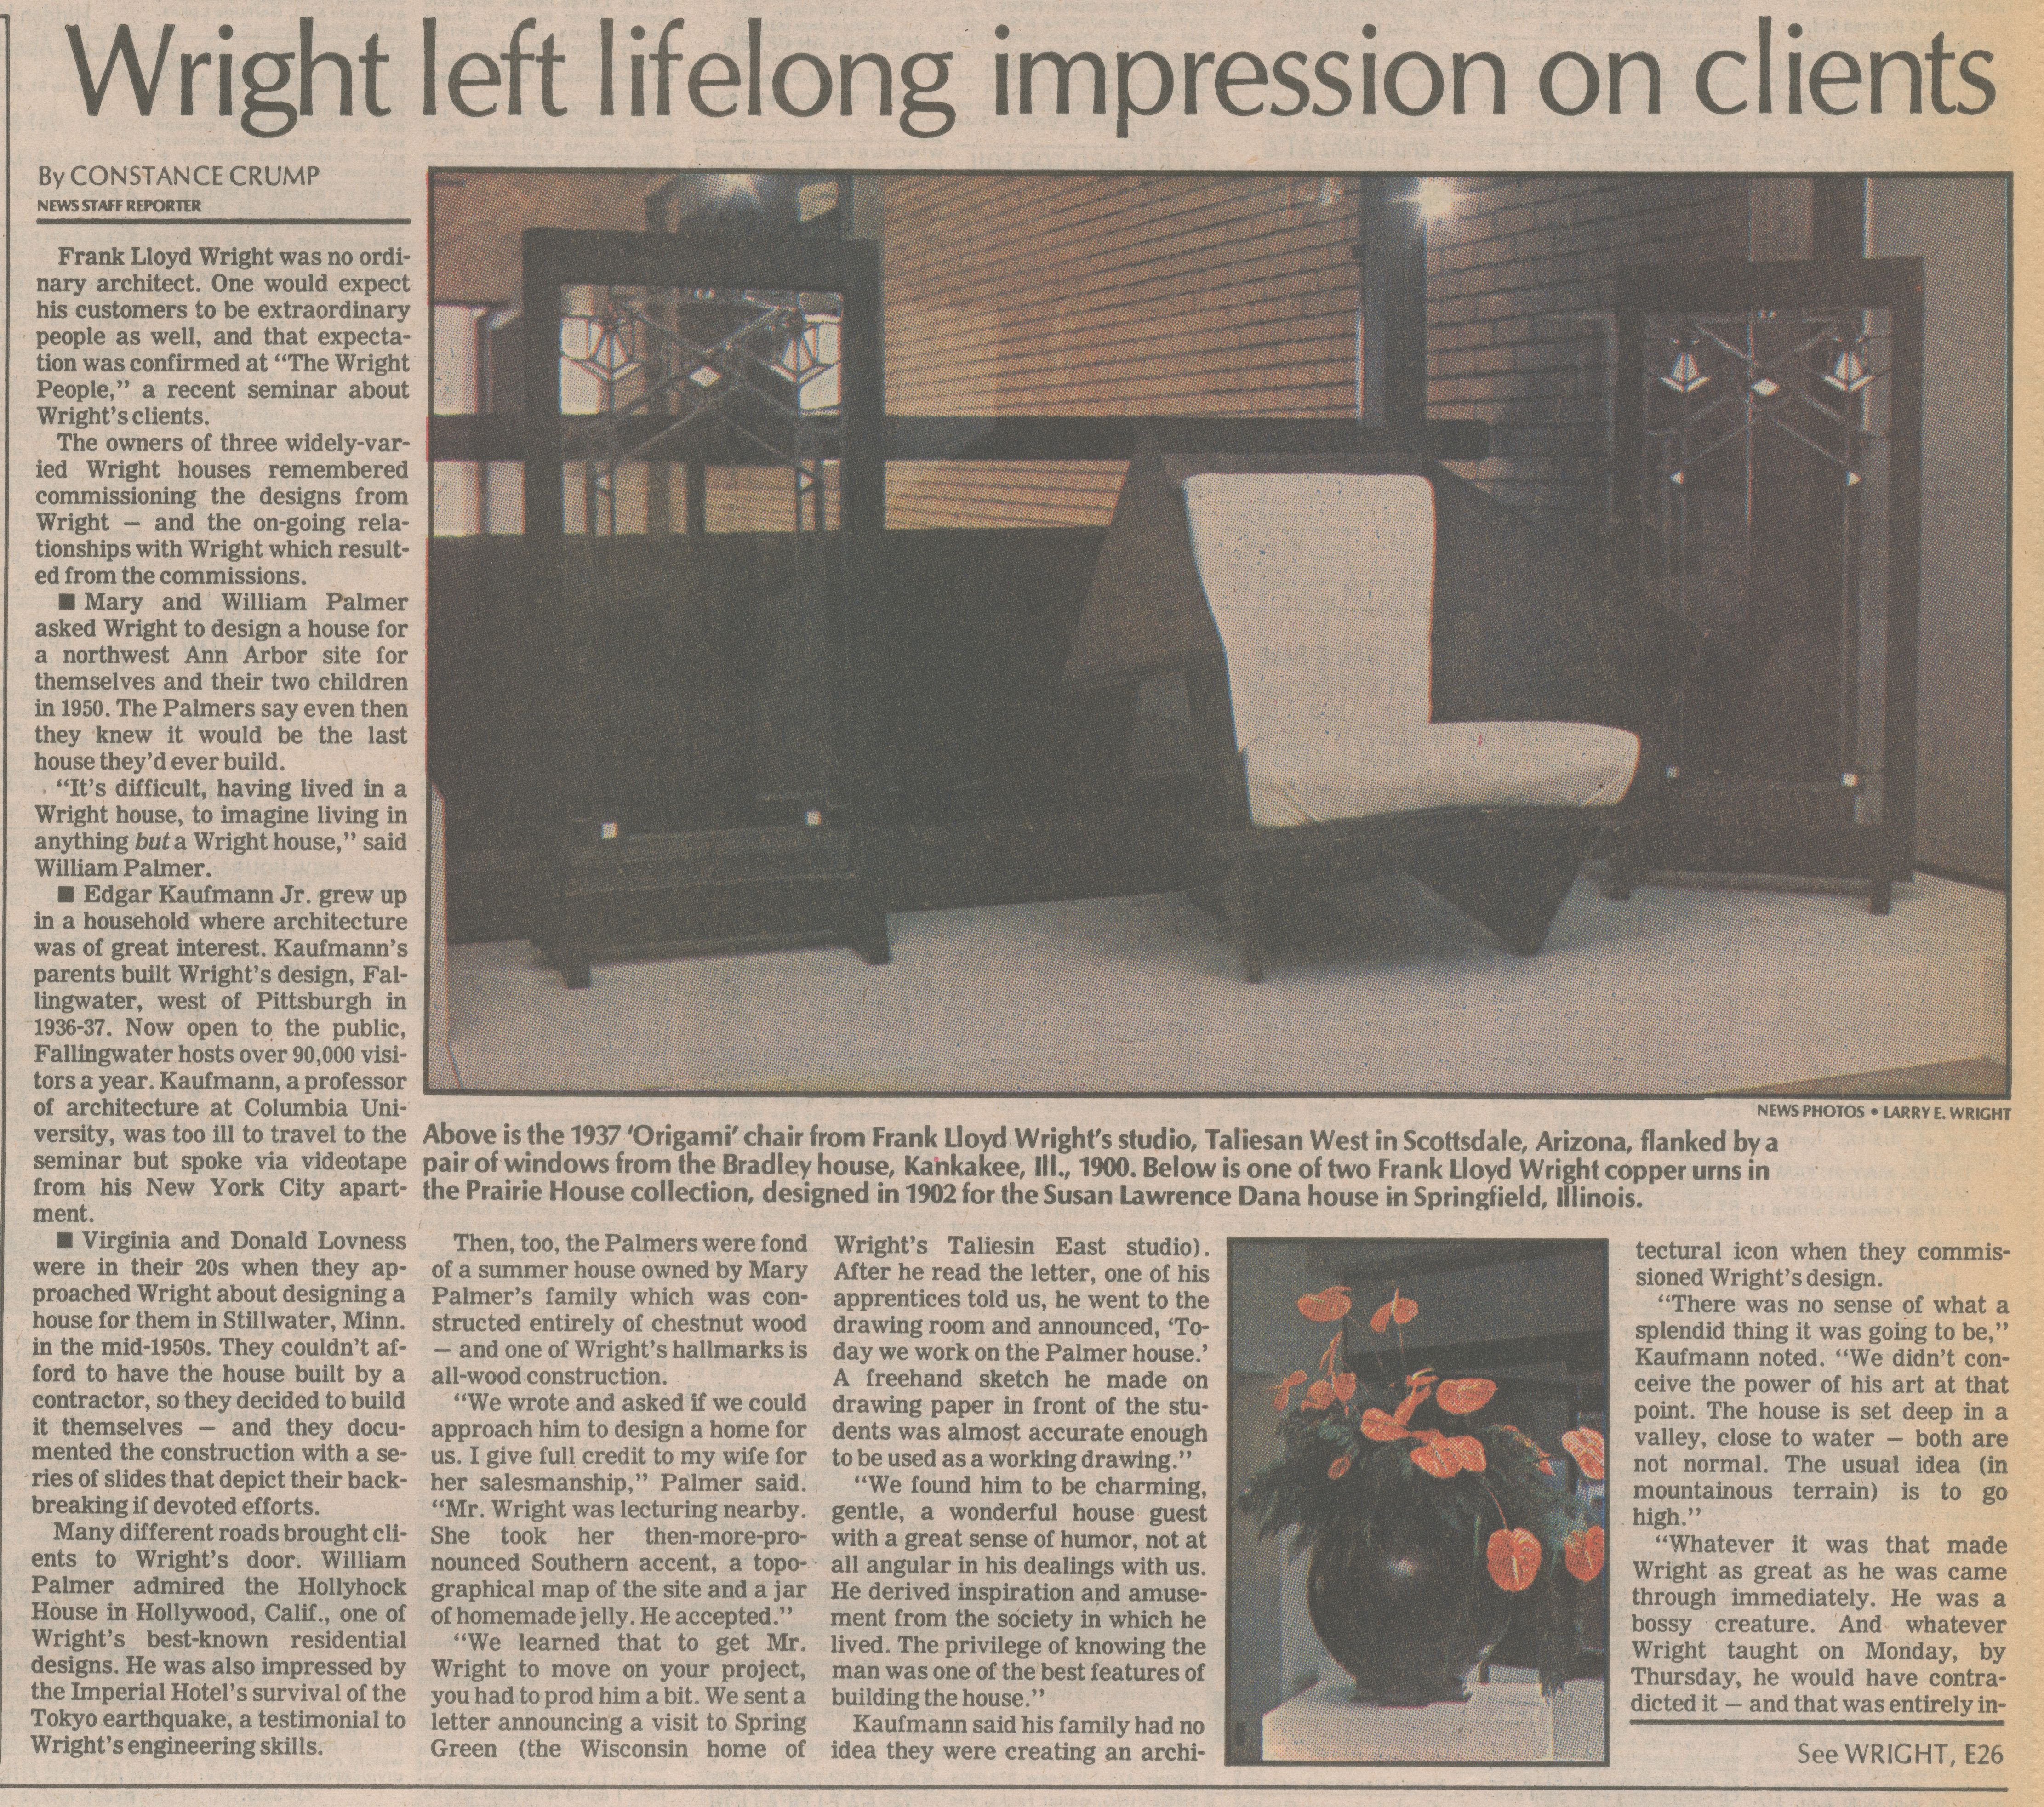 Wright Left Lifelong Impression On Clients image